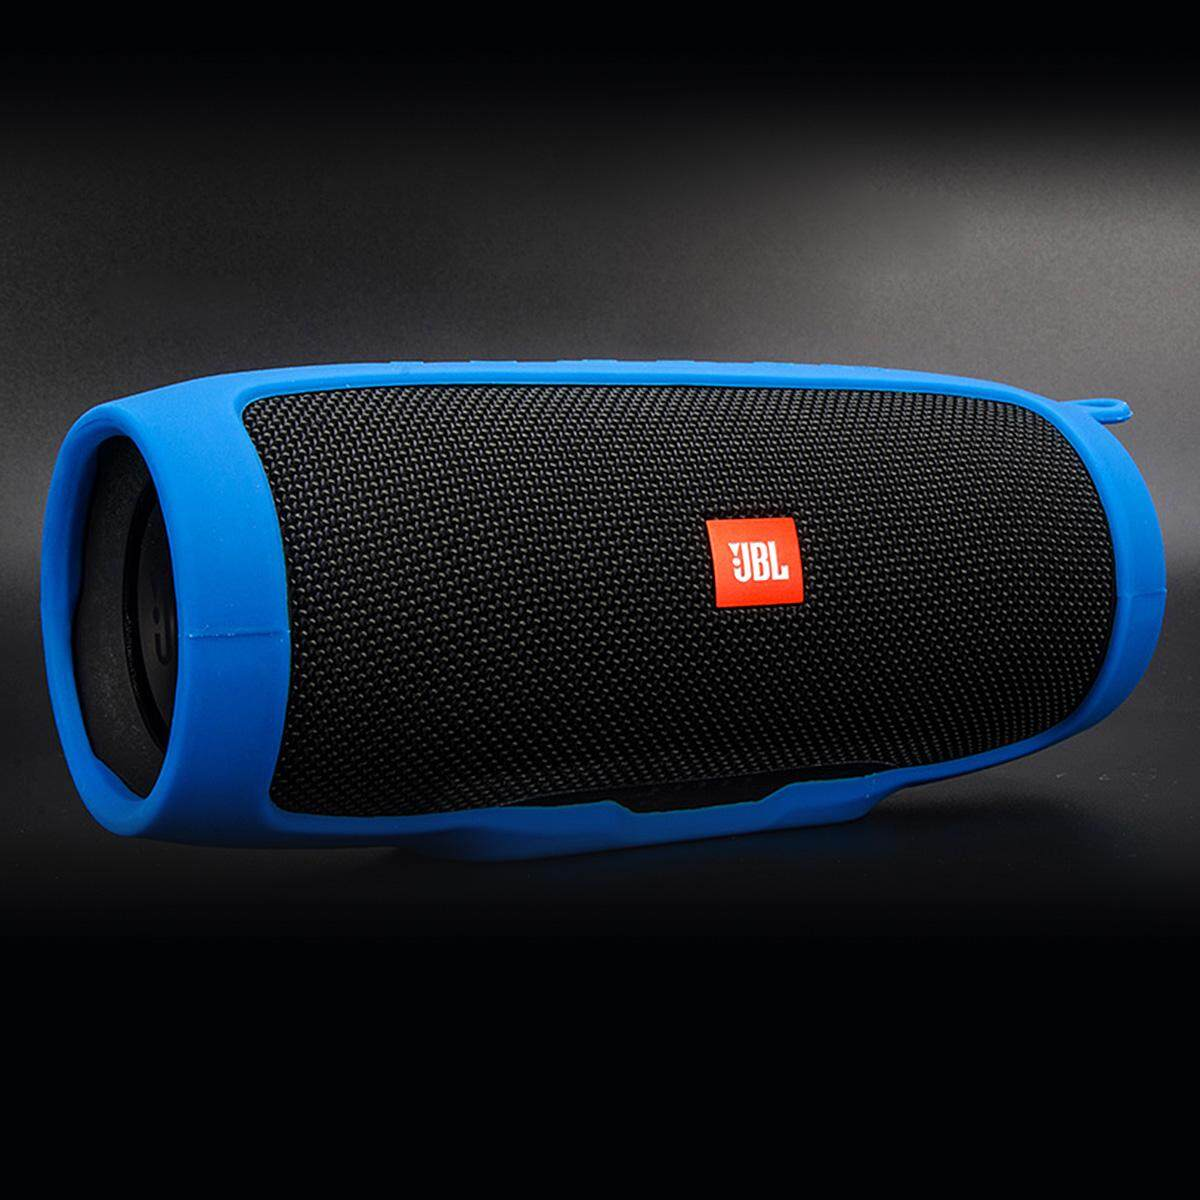 Detail Gambar Soft Silicone Case Cover for JBL Charge 3 Bluetooth Speaker - Blue Terbaru